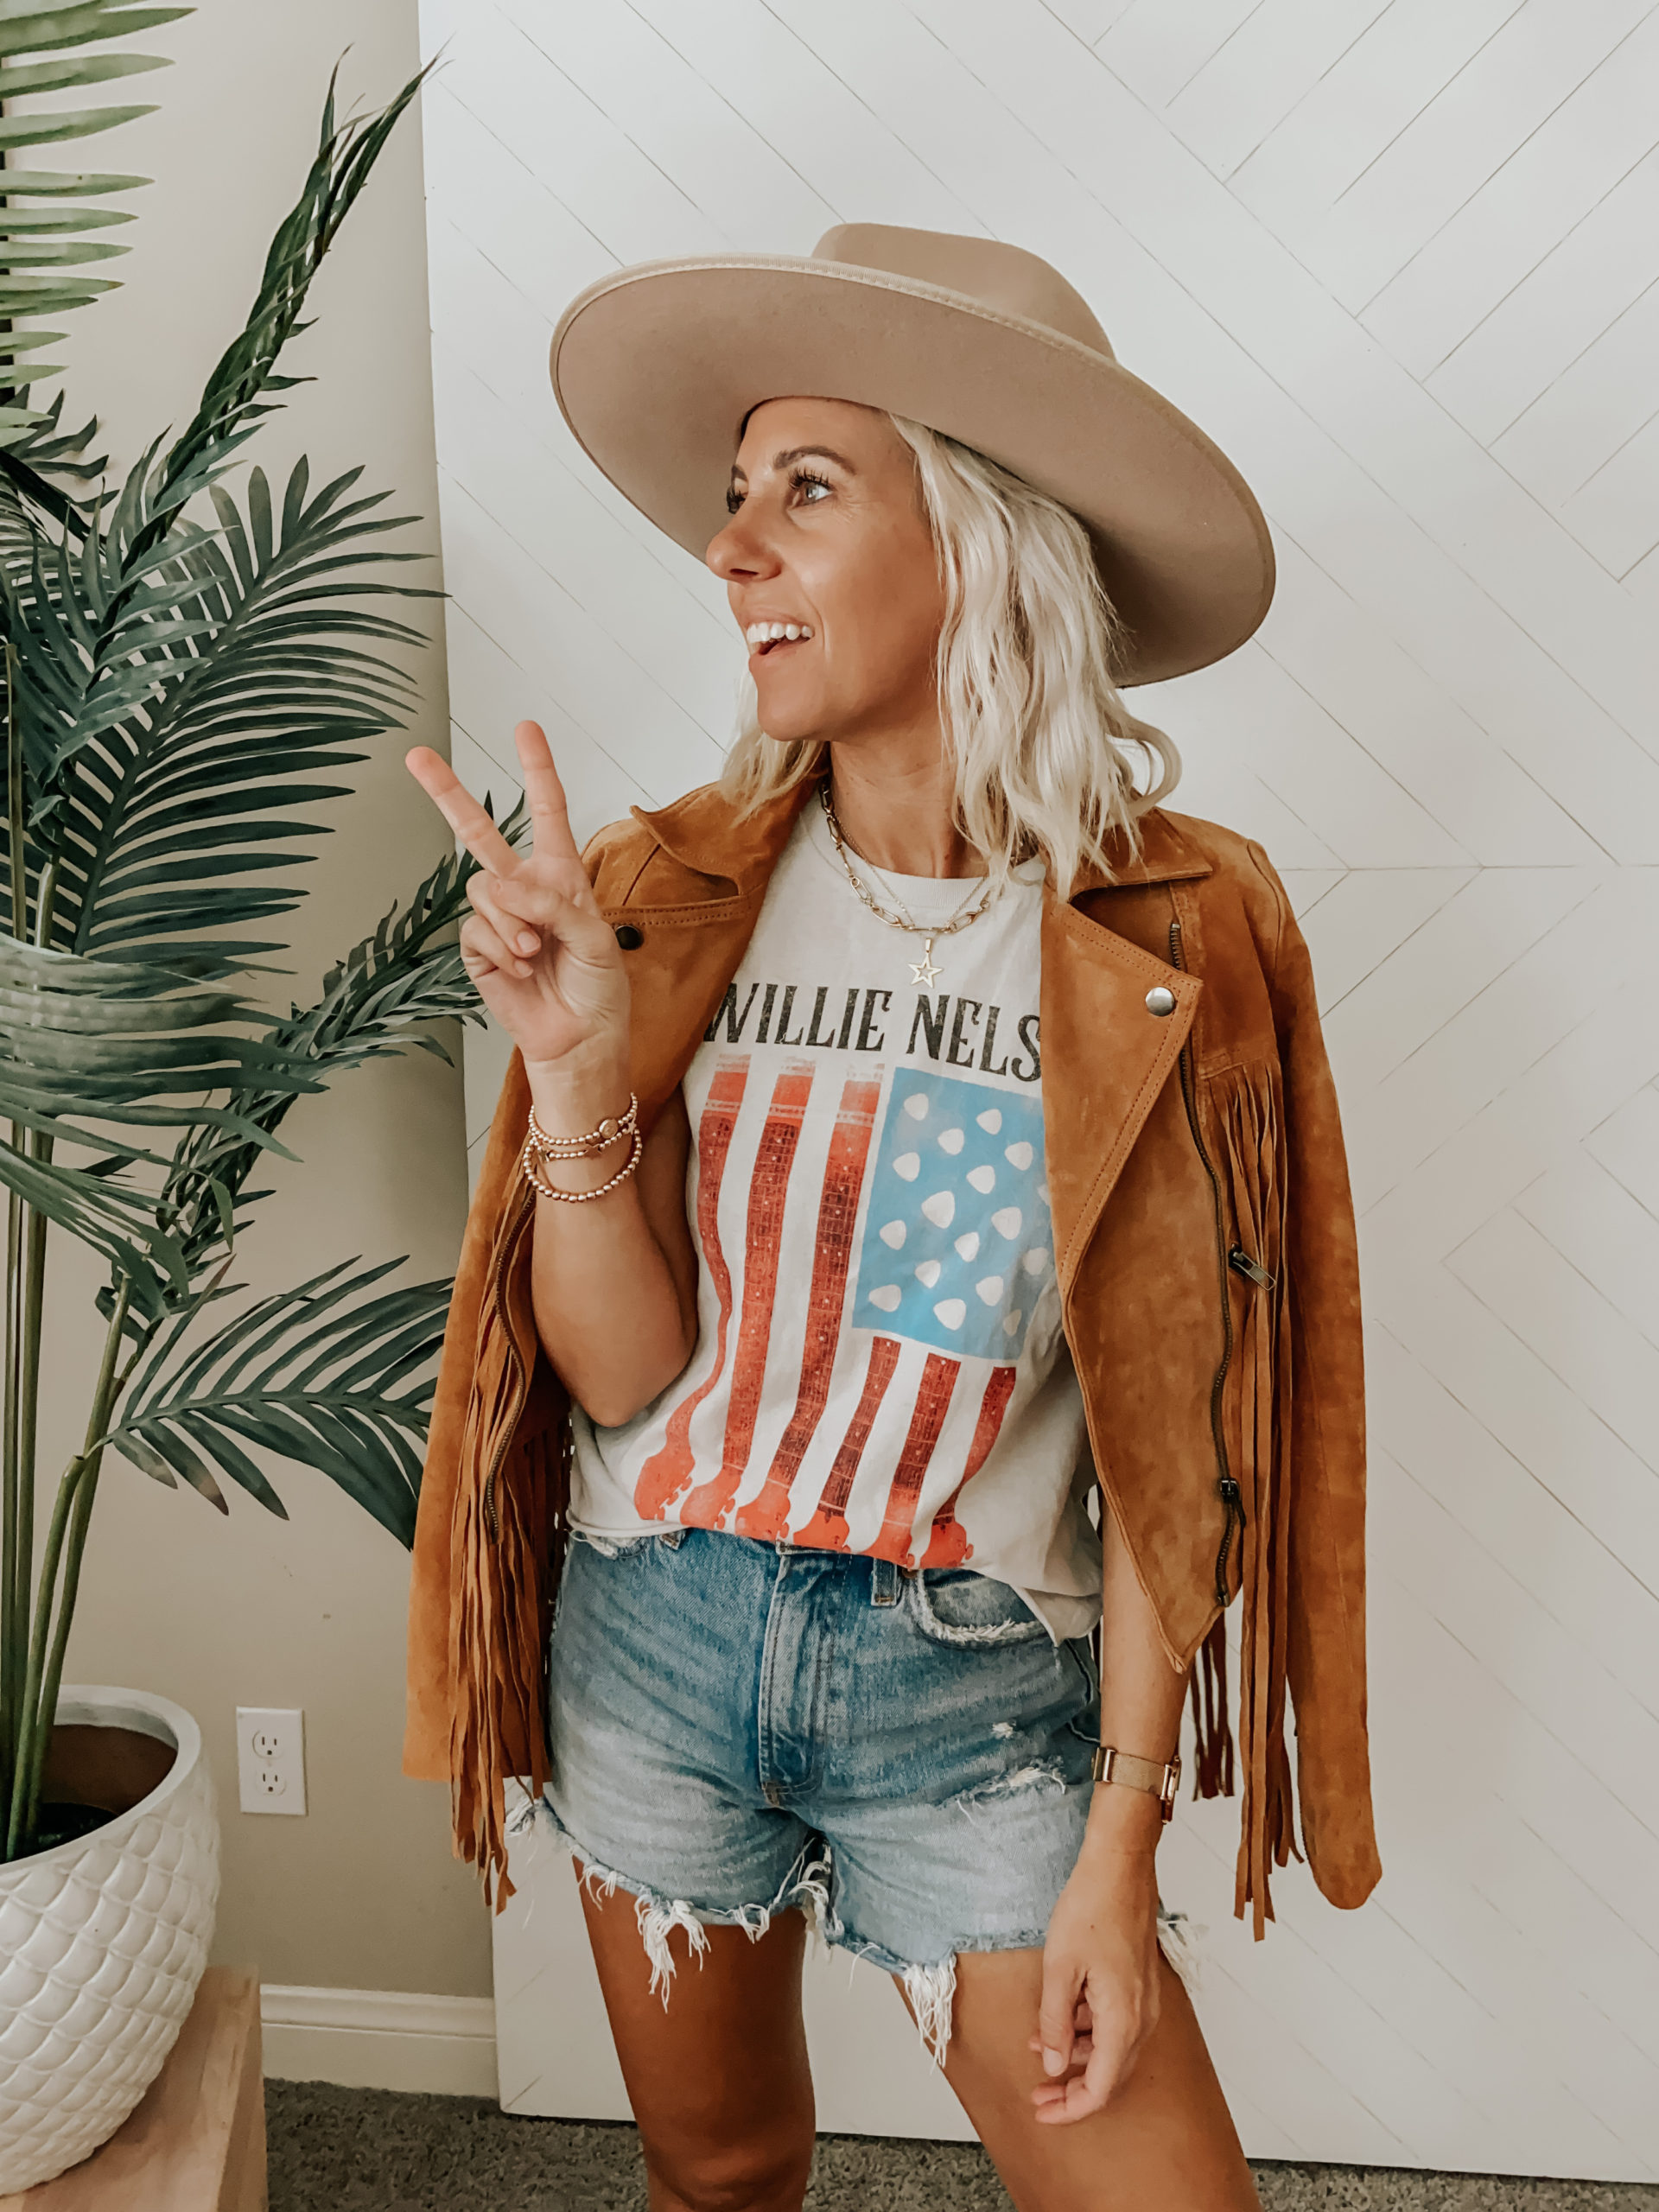 LAST MINUTE 4TH OF JULY OUTFIT IDEAS- Jaclyn De Leon Style+ sharing a few Americana style outfits for the festive holidays